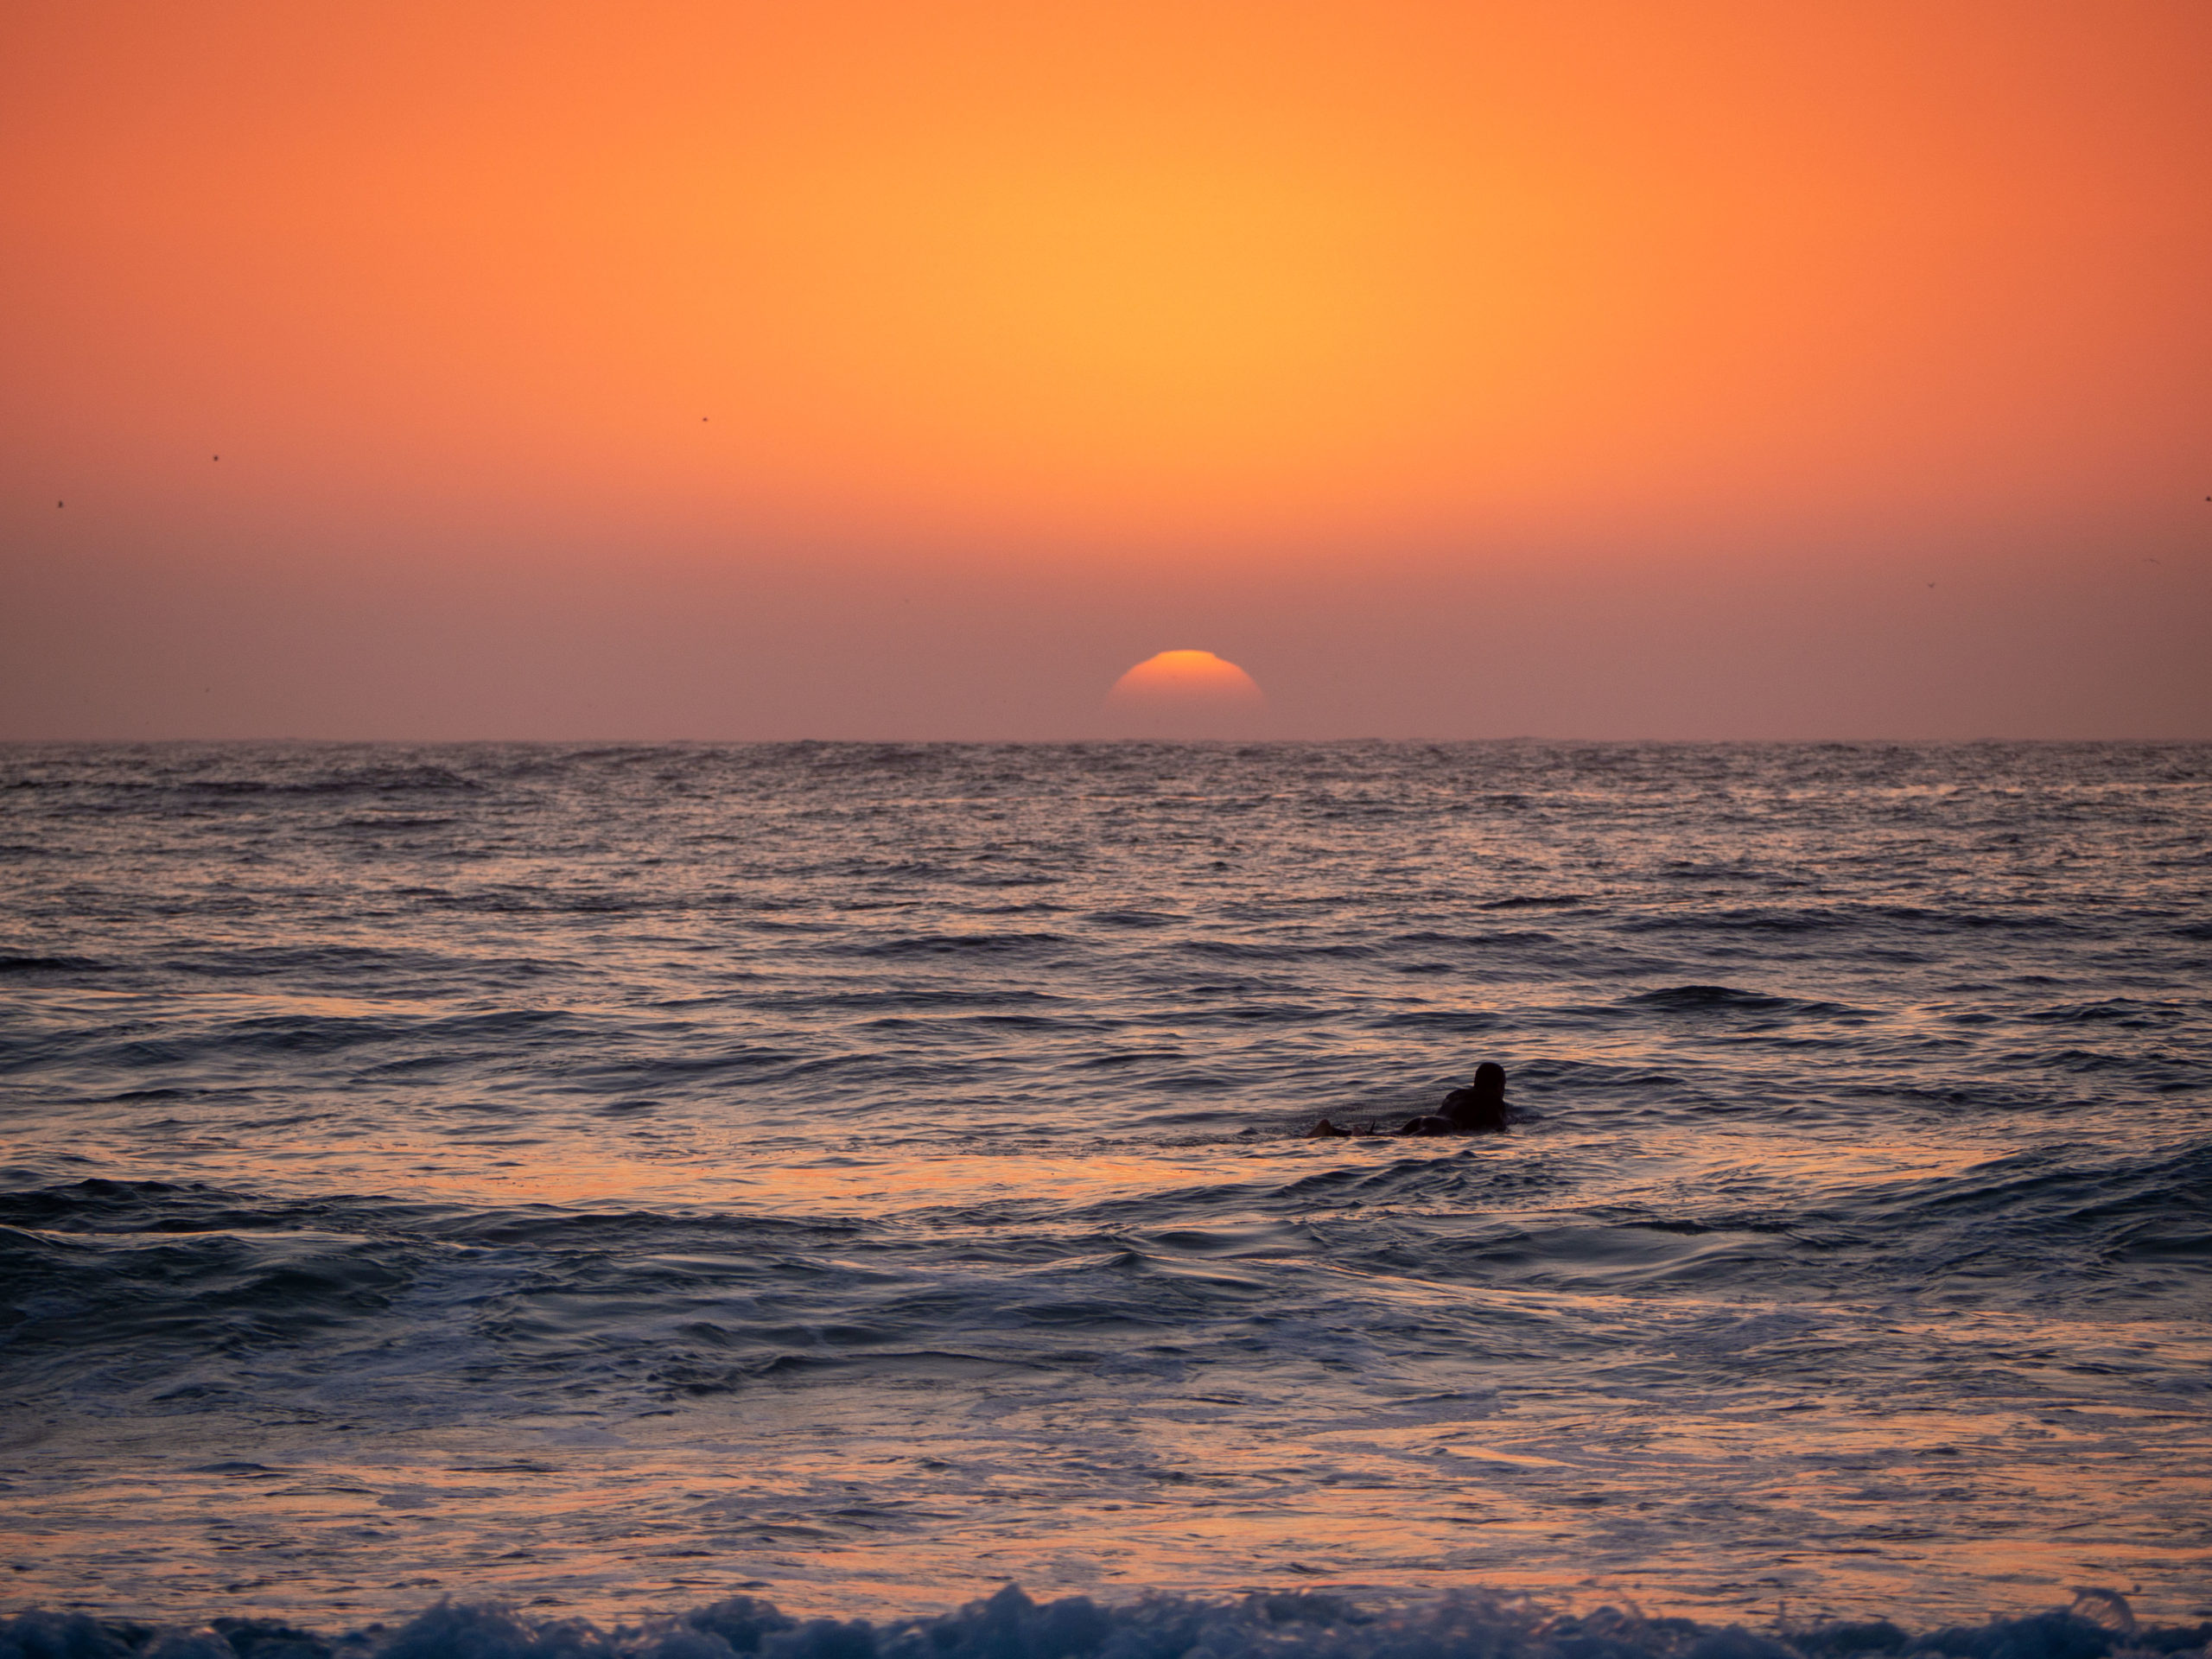 Surfing the sunset